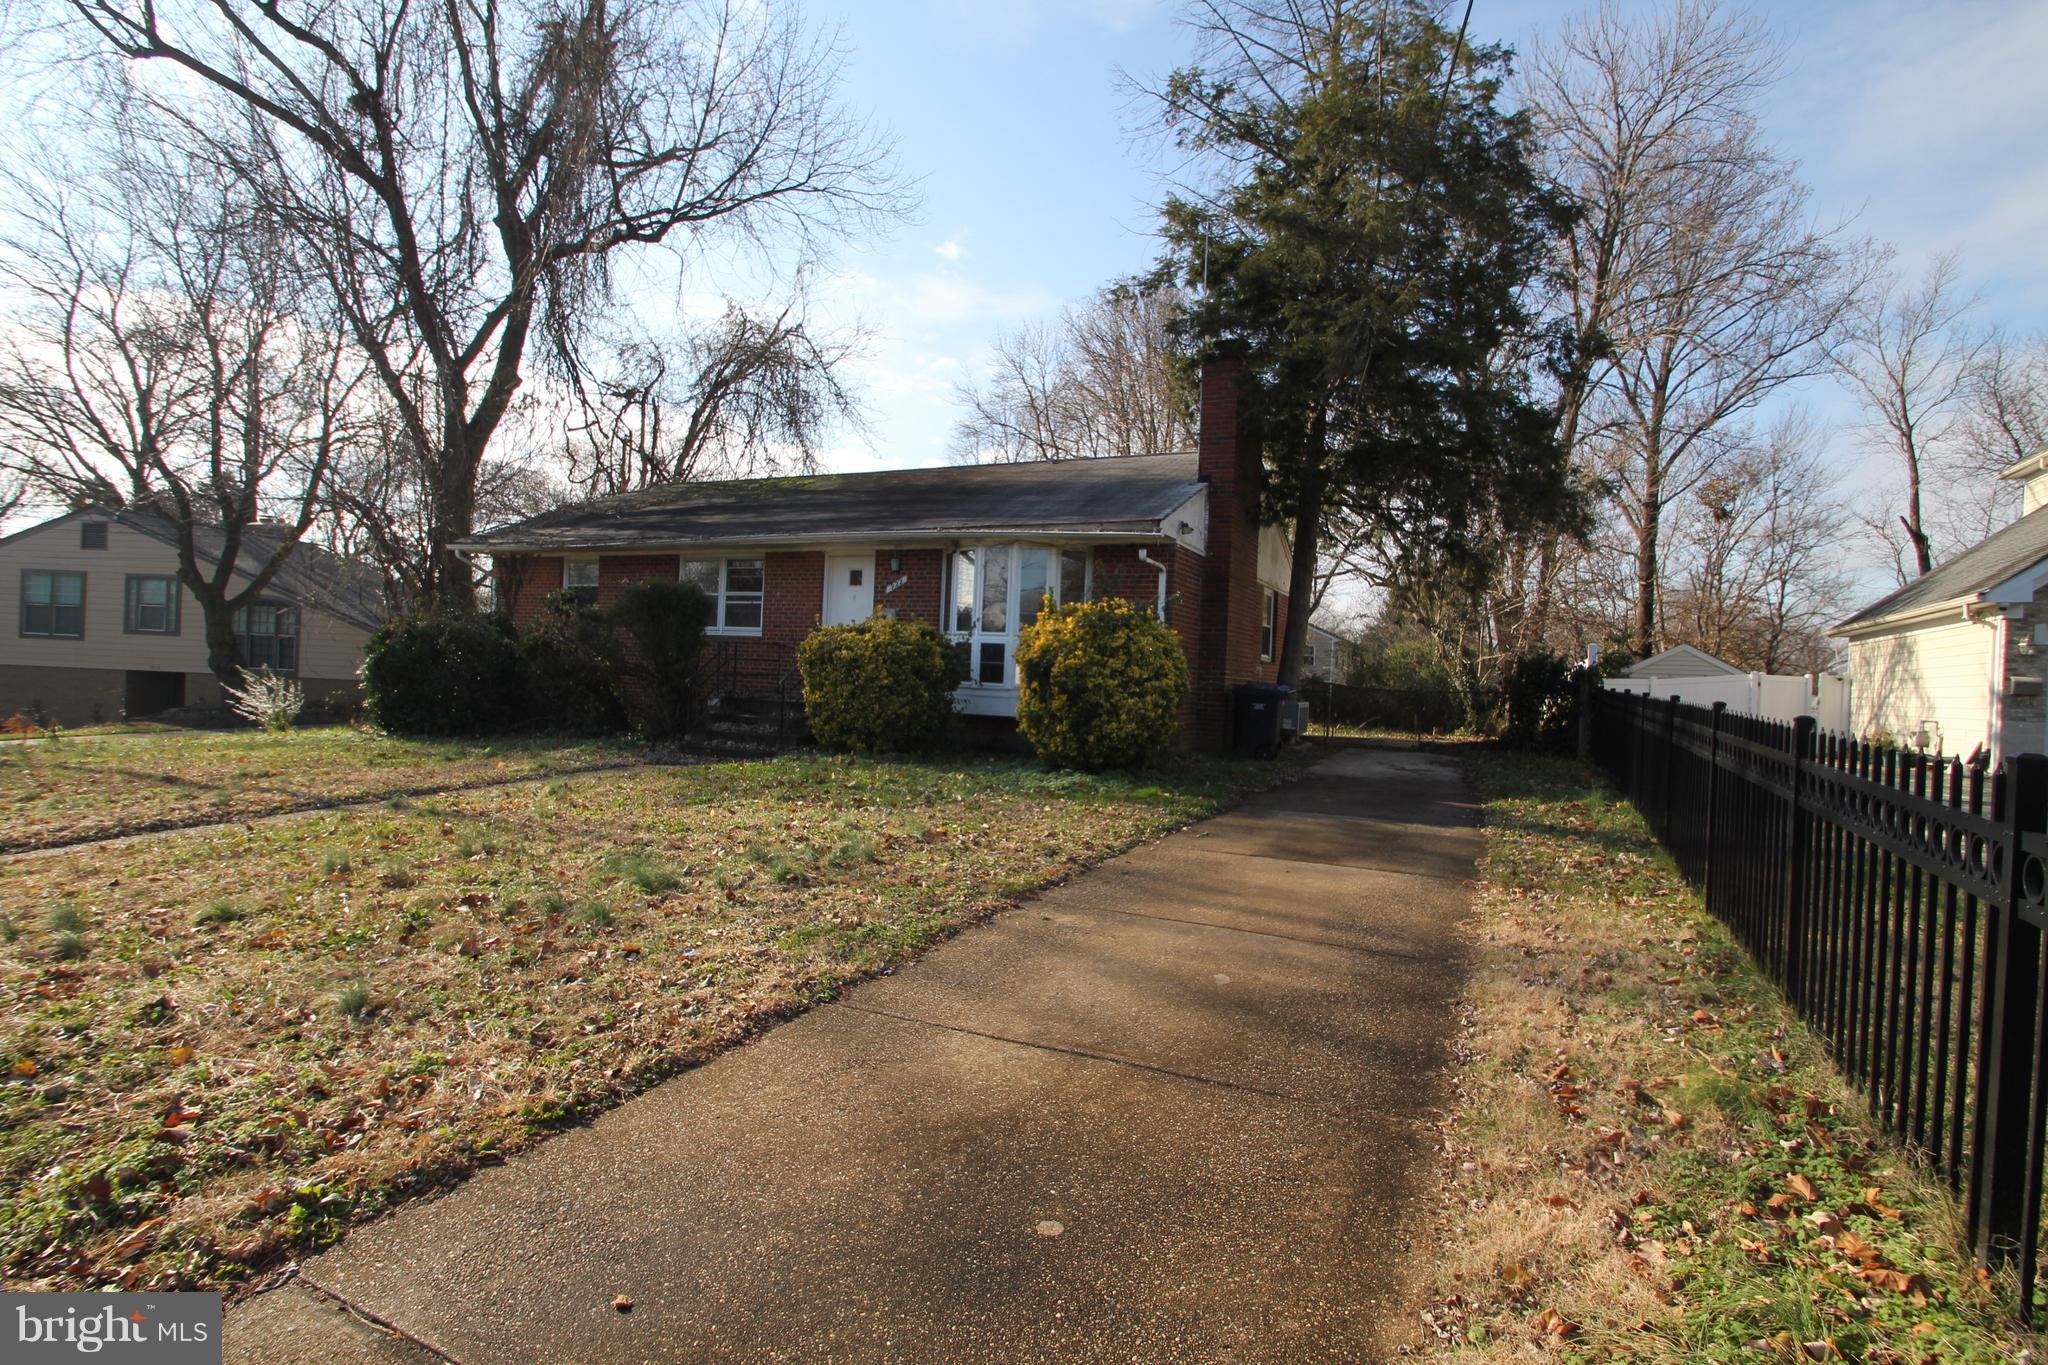 Excellent opportunity! 3 bed 2 bath rambler in Lincolnia Hills. Only 7 miles outside of the city. Large flat lot. Steps from N. Morgan bus stop.